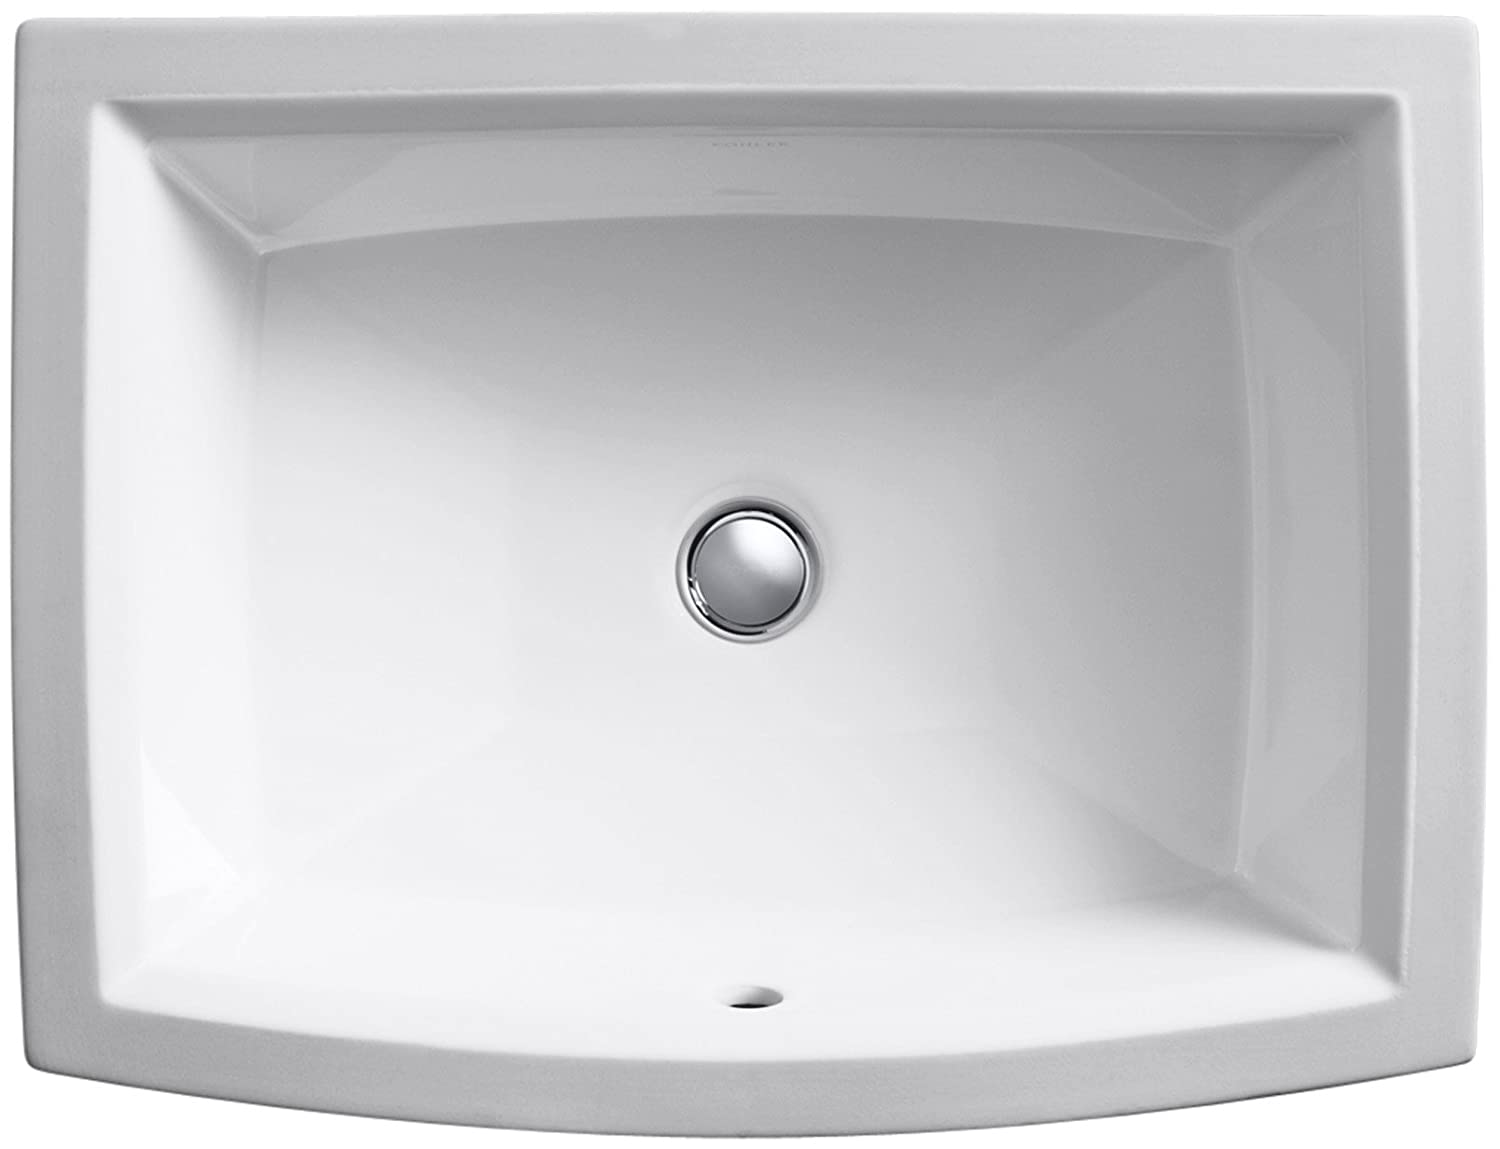 KOHLER K-2355-7 Archer Undercounter Bathroom Sink, Black Black ...